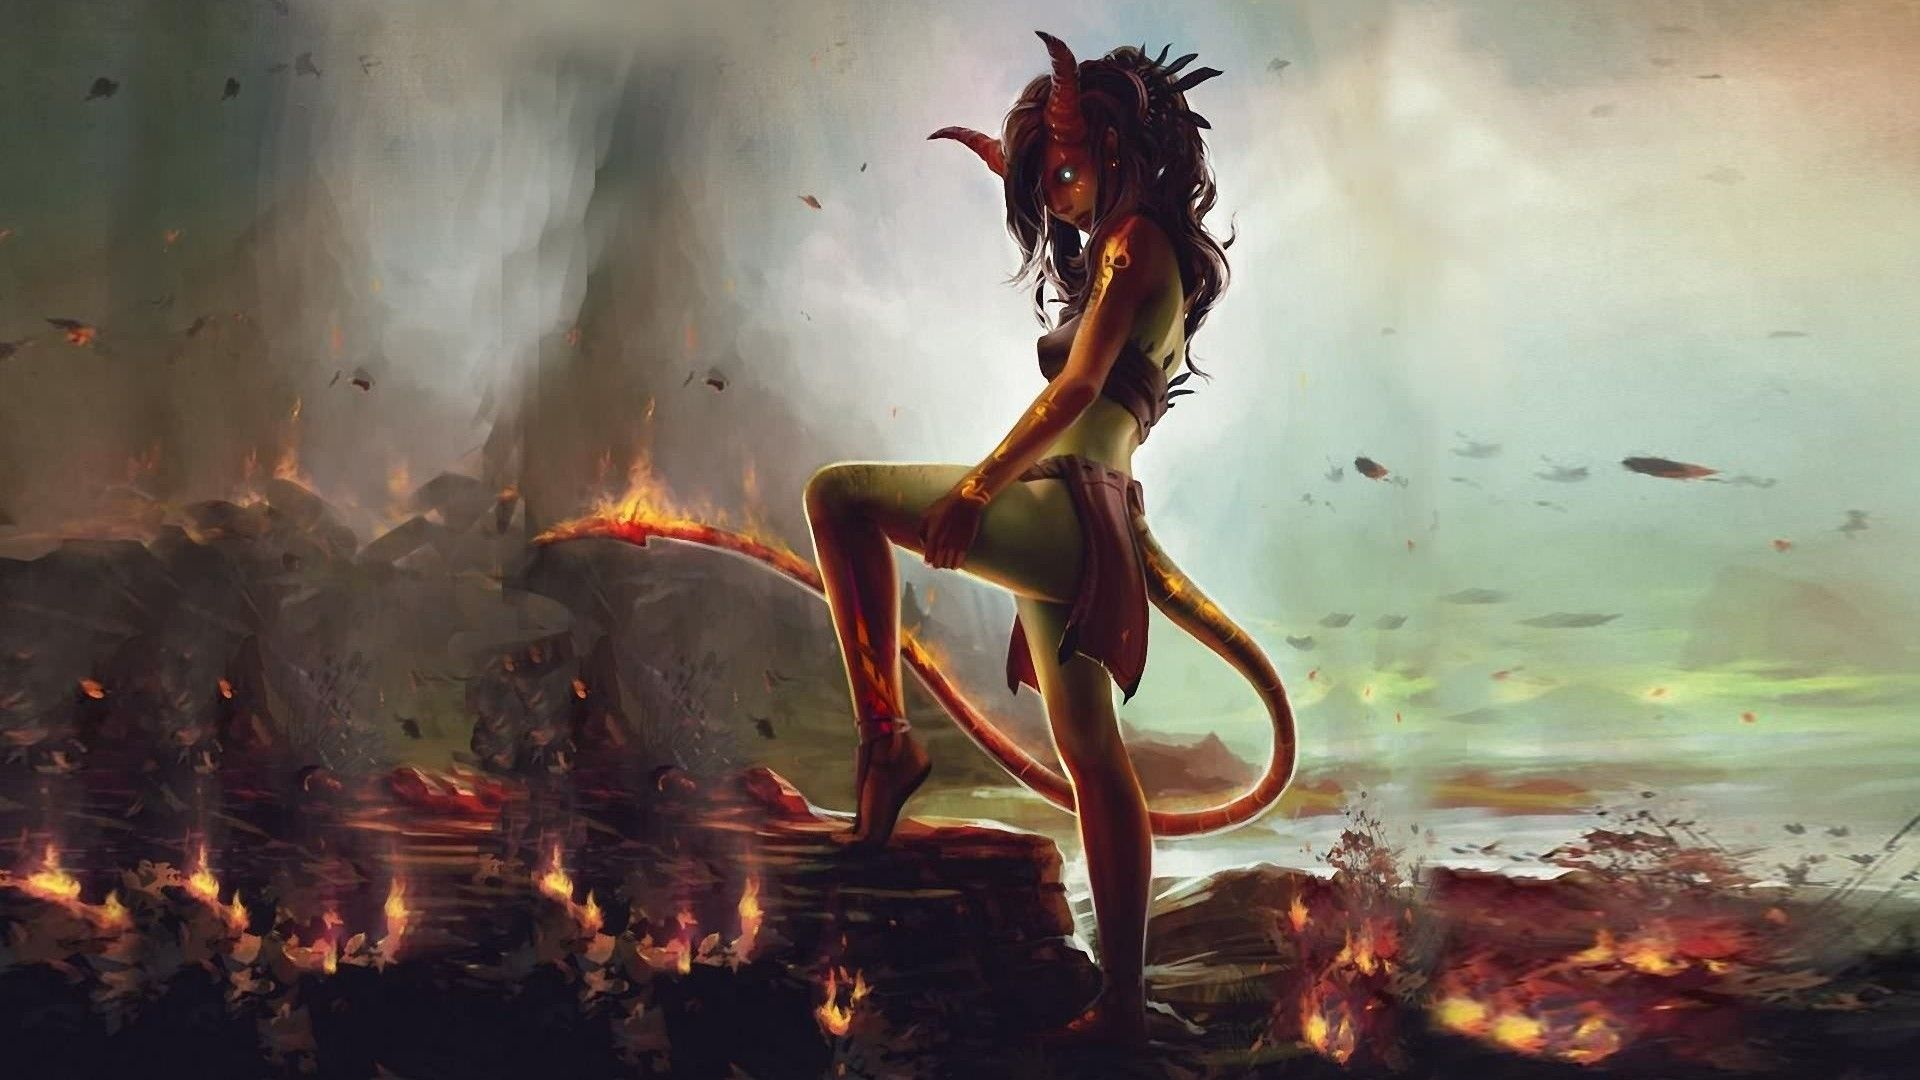 Demon Girl Wallpapers - Top Free Demon